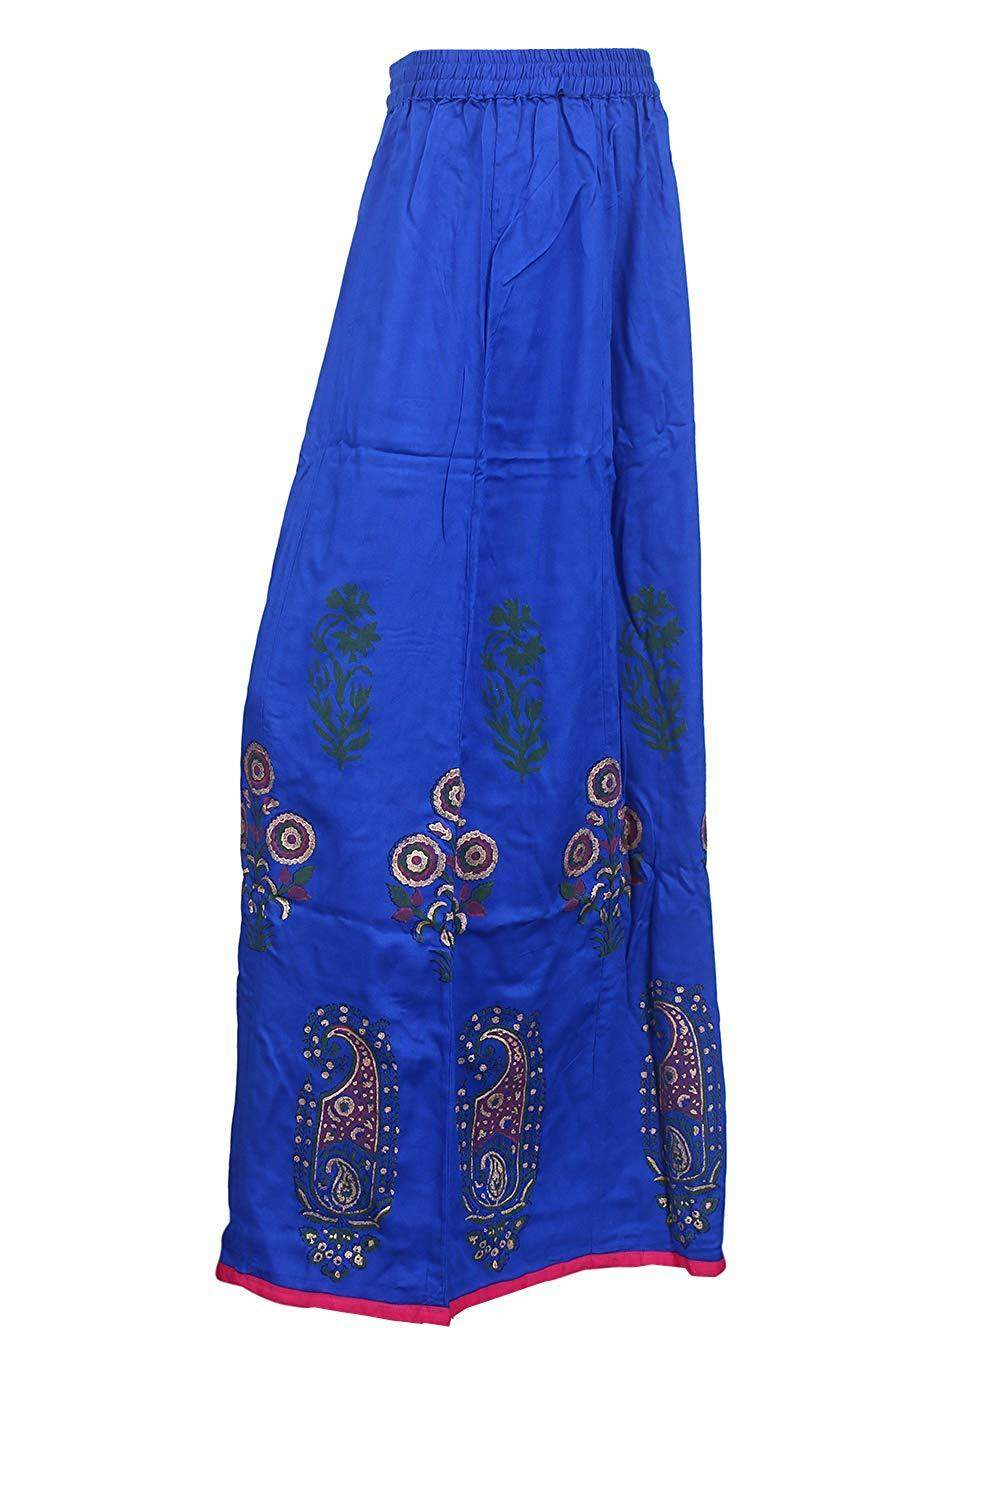 Poly Crepe Palazzo with Short Style Inner Lining (Blue)